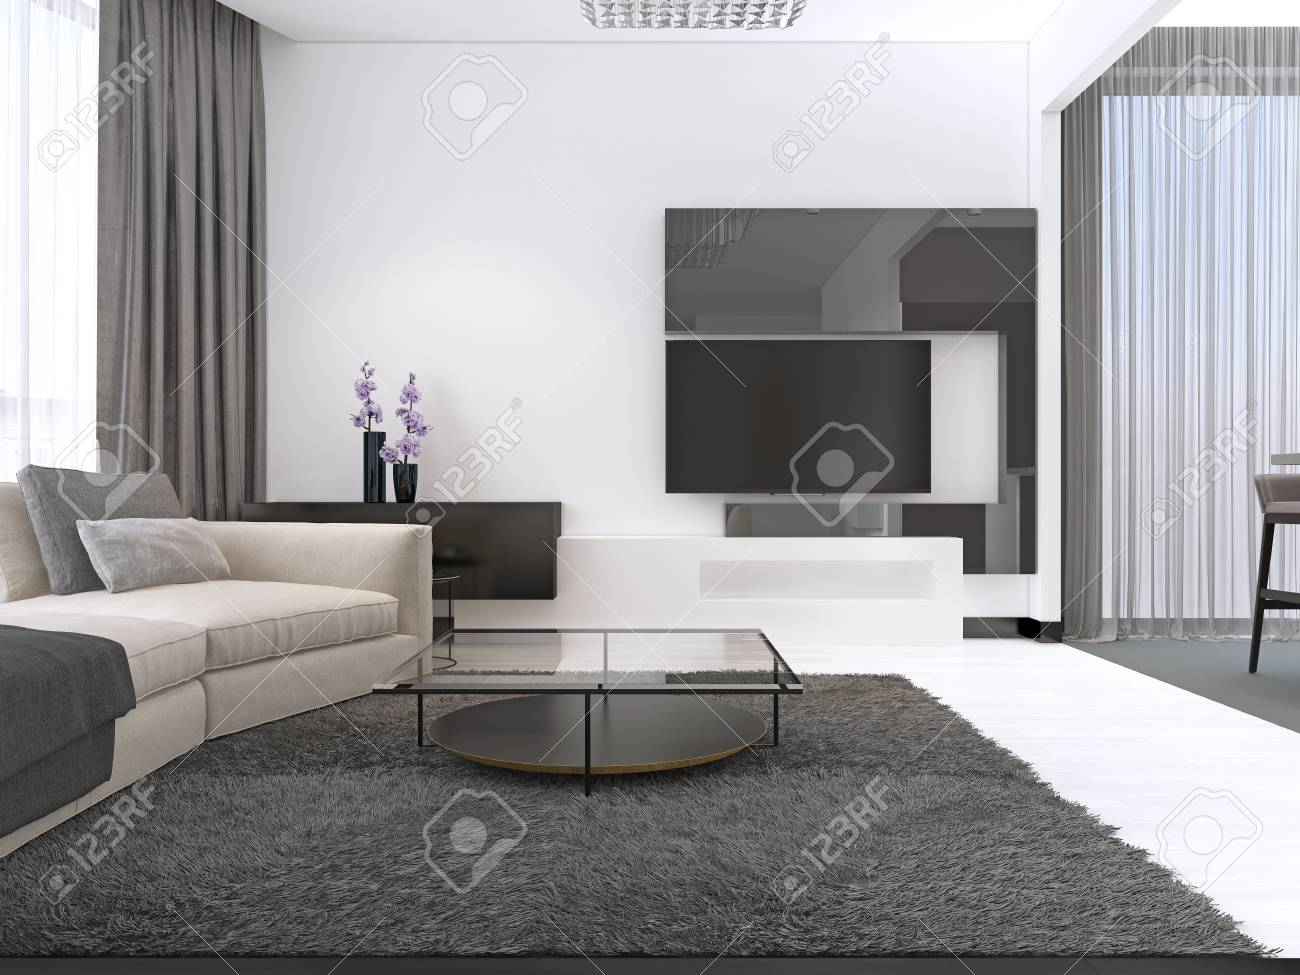 Interior Design Living Room With A Large Corner Sofa And A Tv Stock Photo Picture And Royalty Free Image Image 113376606